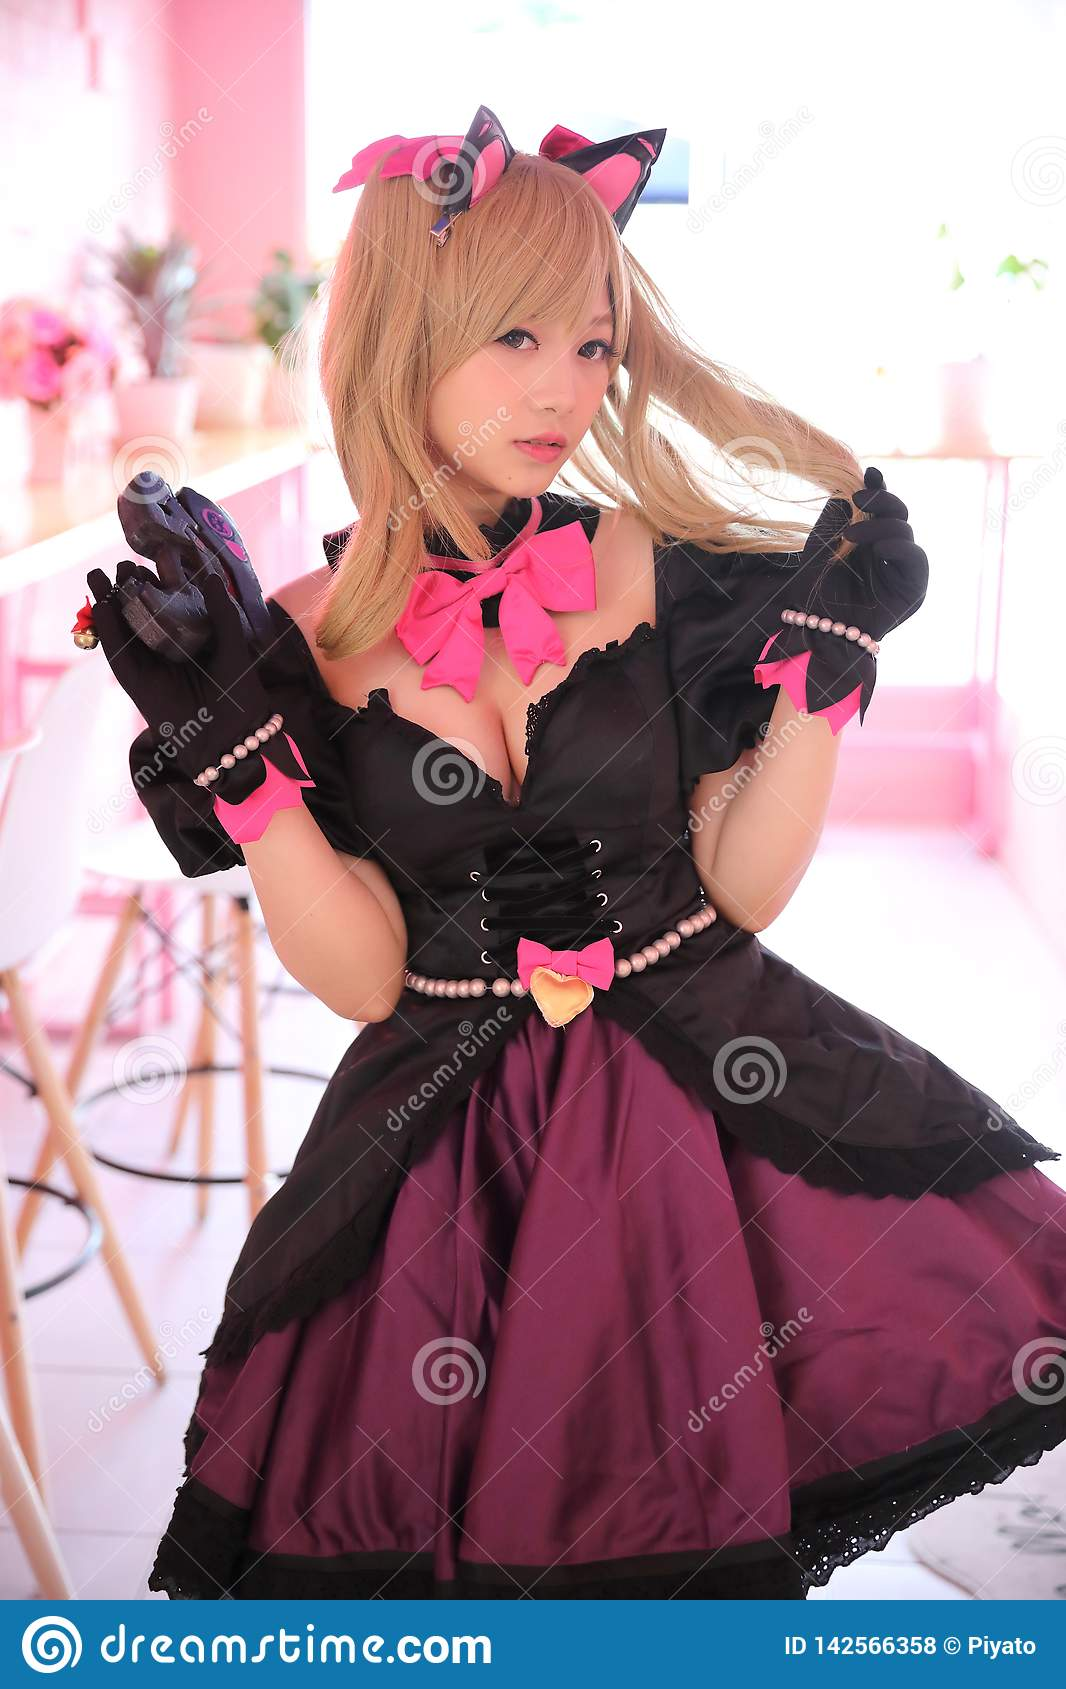 Japan anime cosplay, portrait of girl cosplay in pink room background